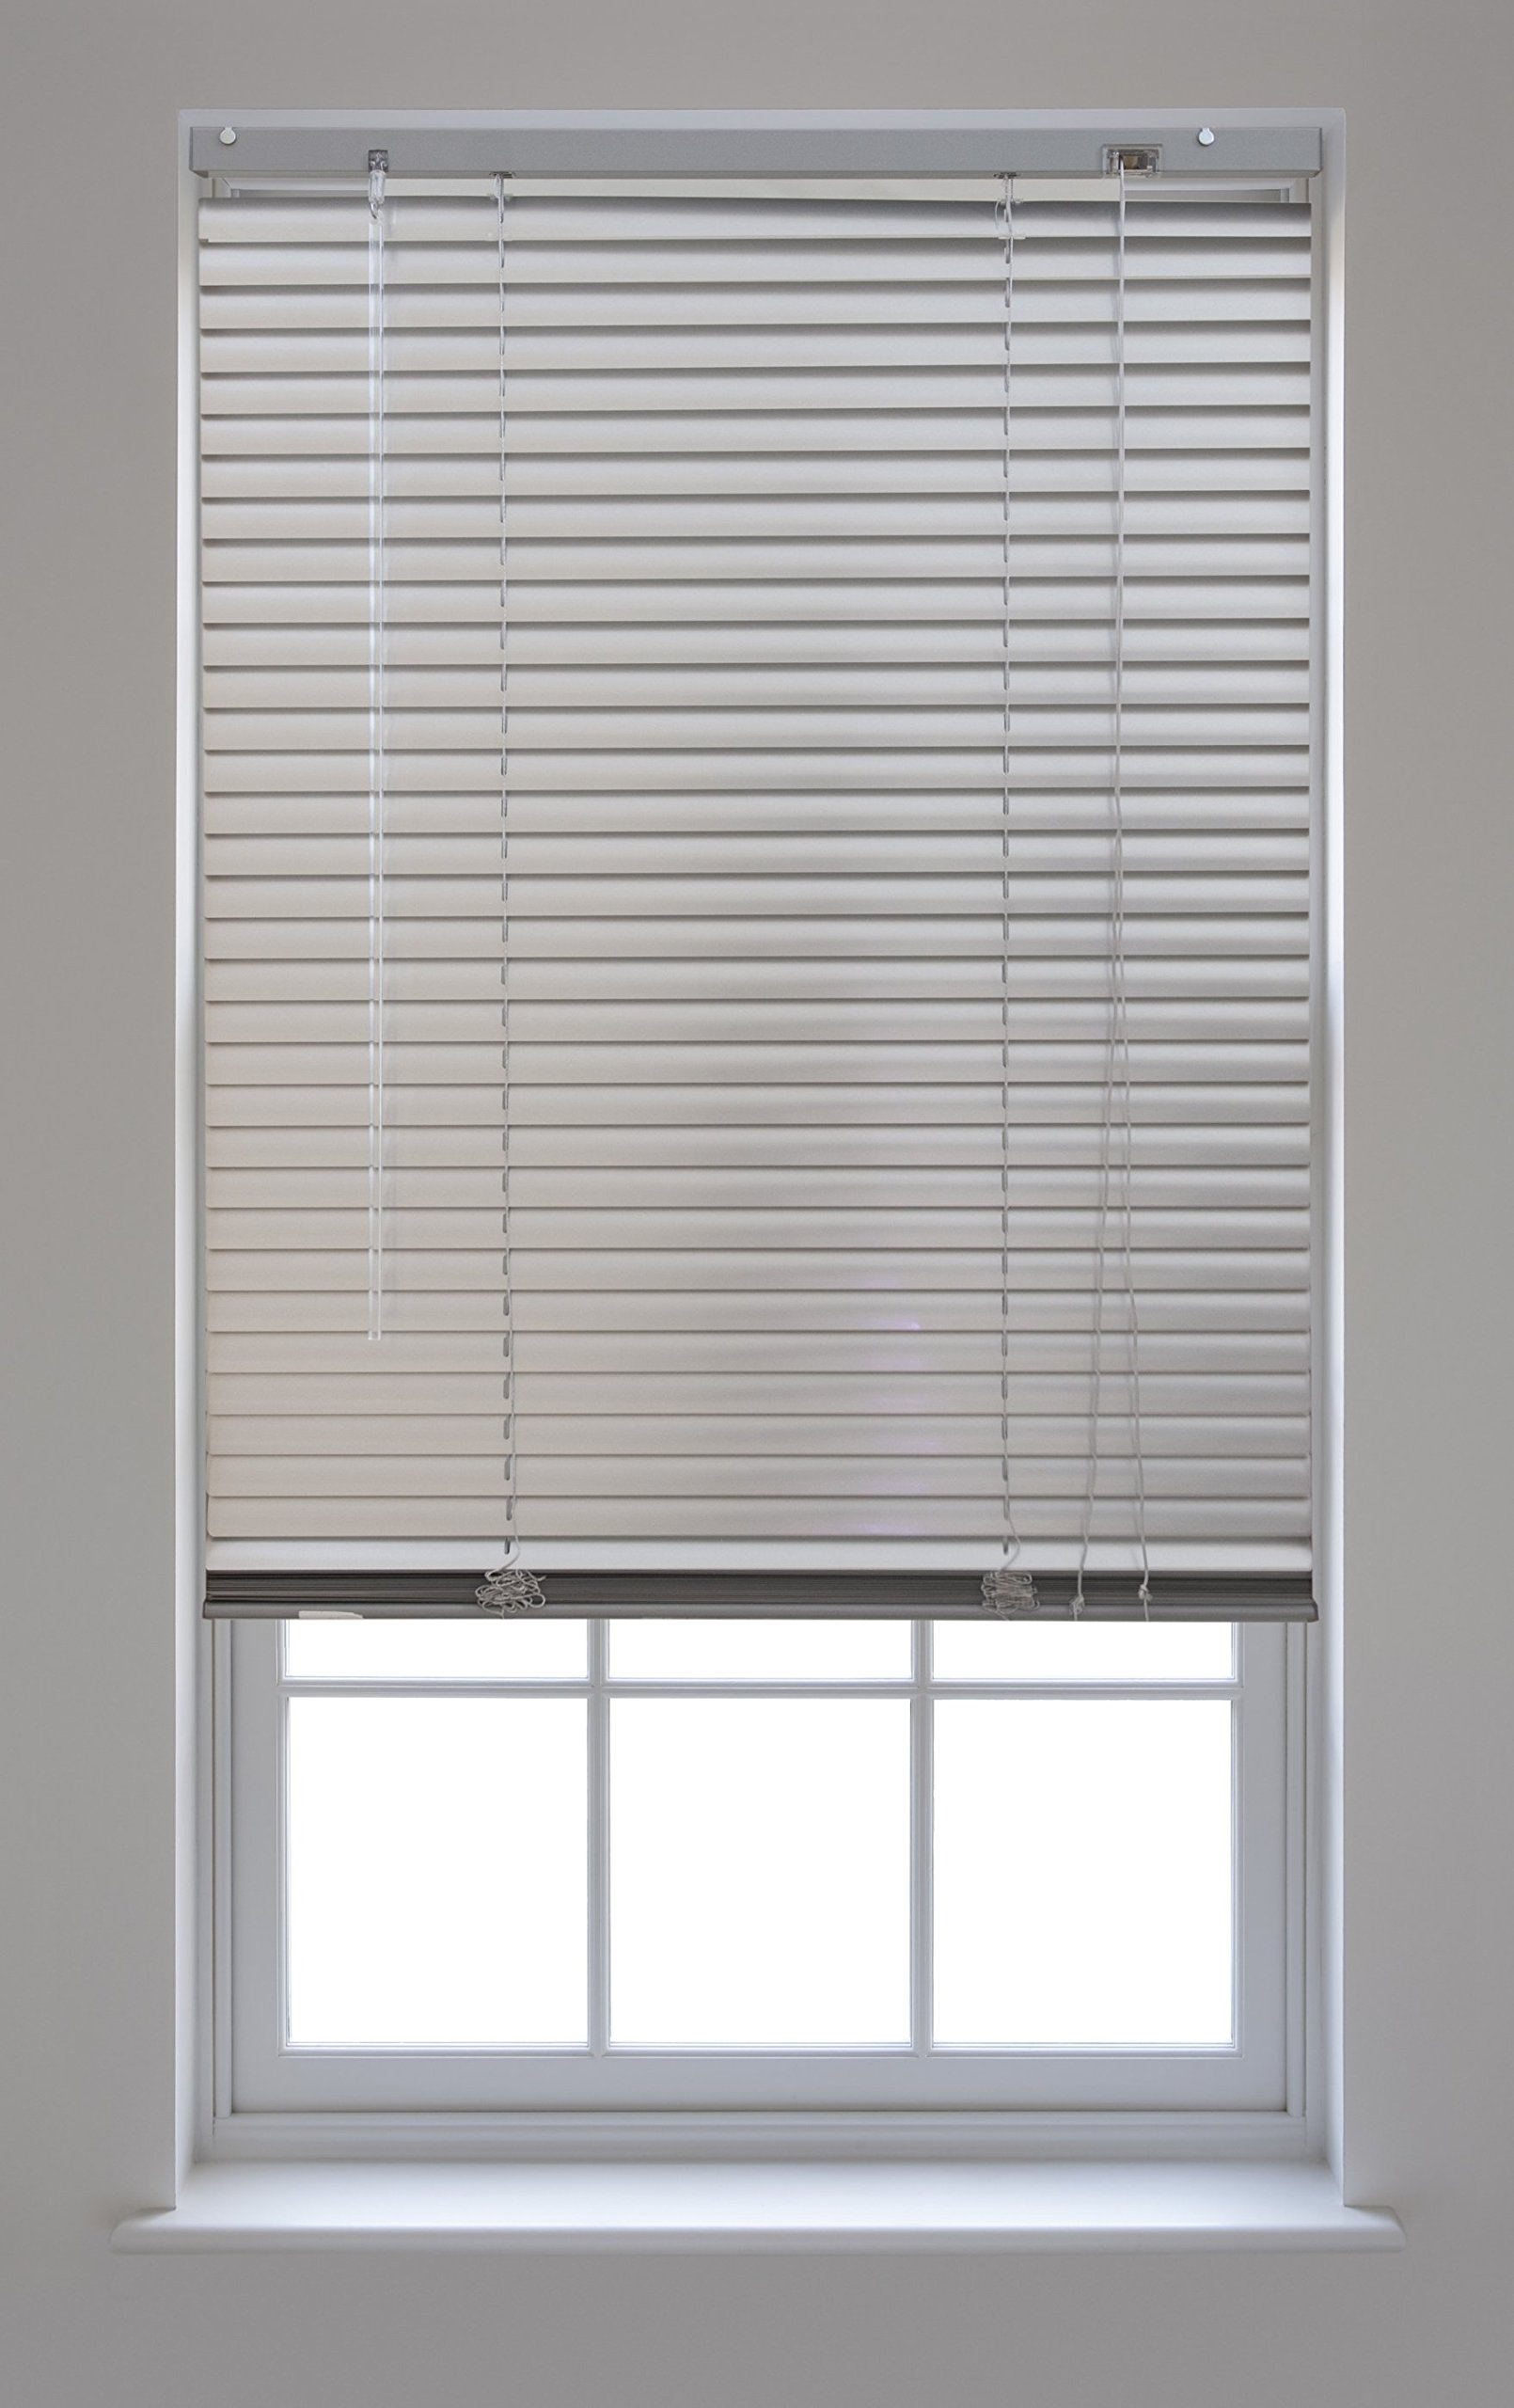 office window blinds. Silver Aluminium Venetian Window Blinds Home Office Blind New - 120cm X 210cm